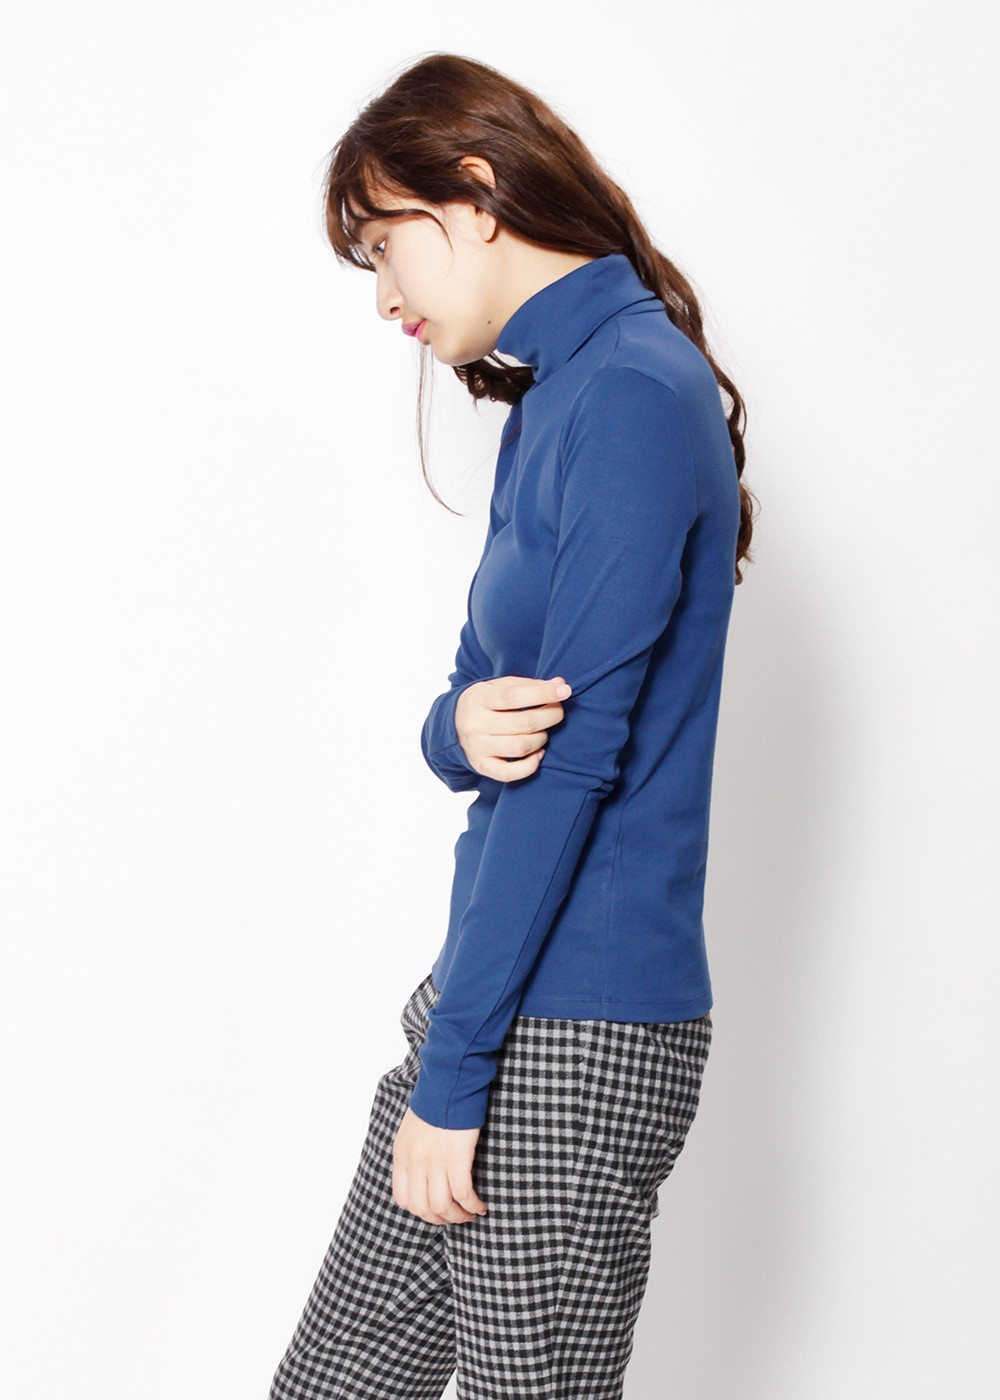 【最大80%OFF】タートルカットソー|BLUE      |カットソー|URBAN RESEARCH warehouse Tops&Outer